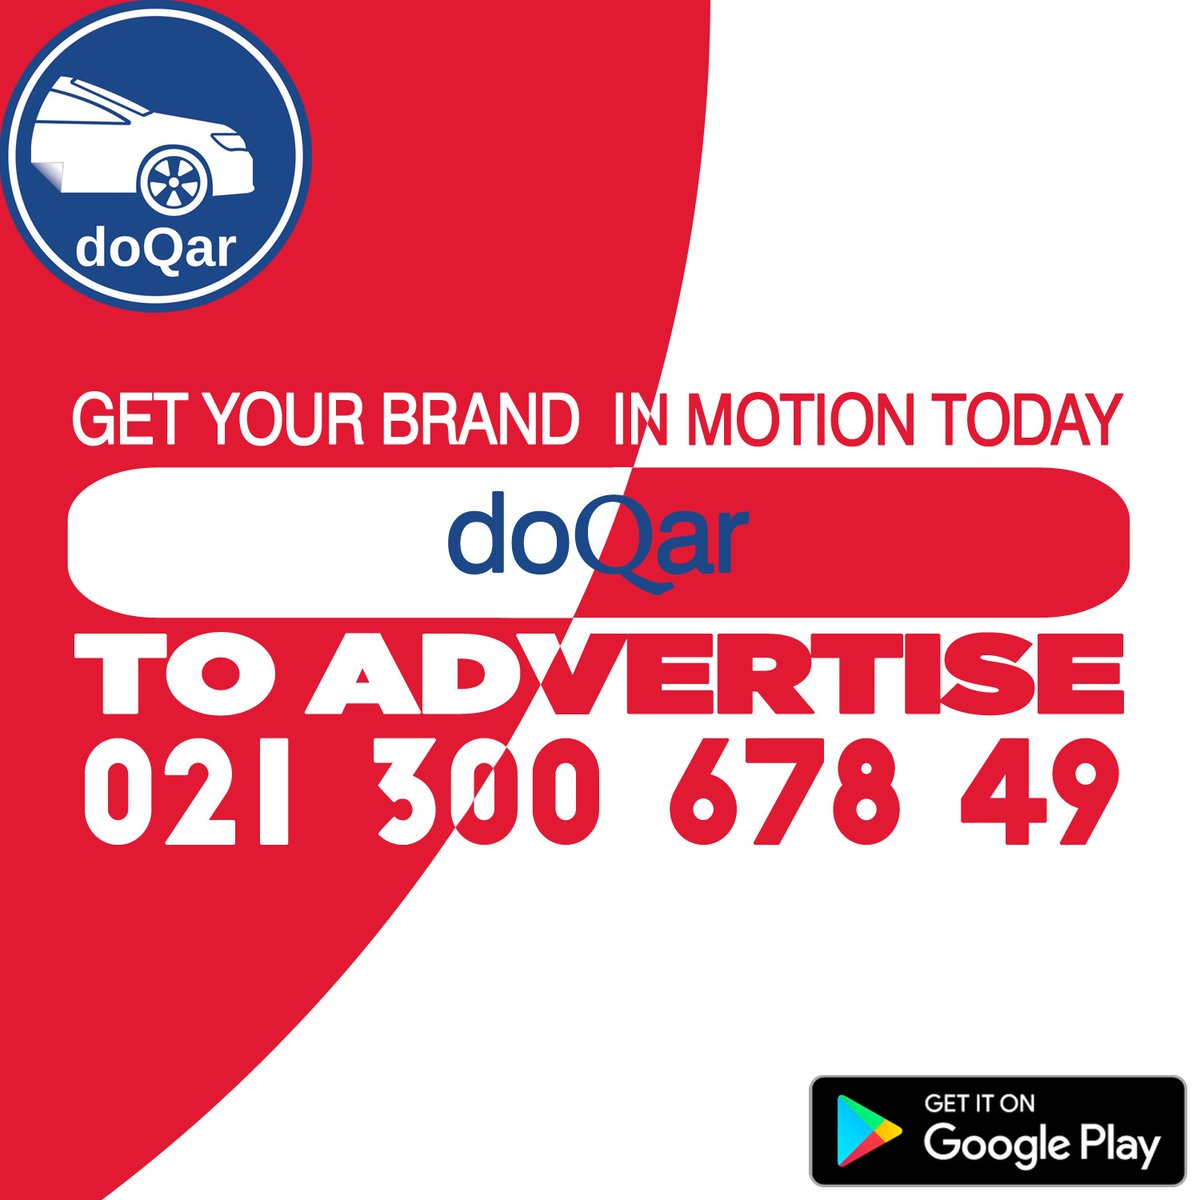 Your Brand In Motion  >> Doqar Indonesia On Twitter Doqar Get Your Brand In Motion Today